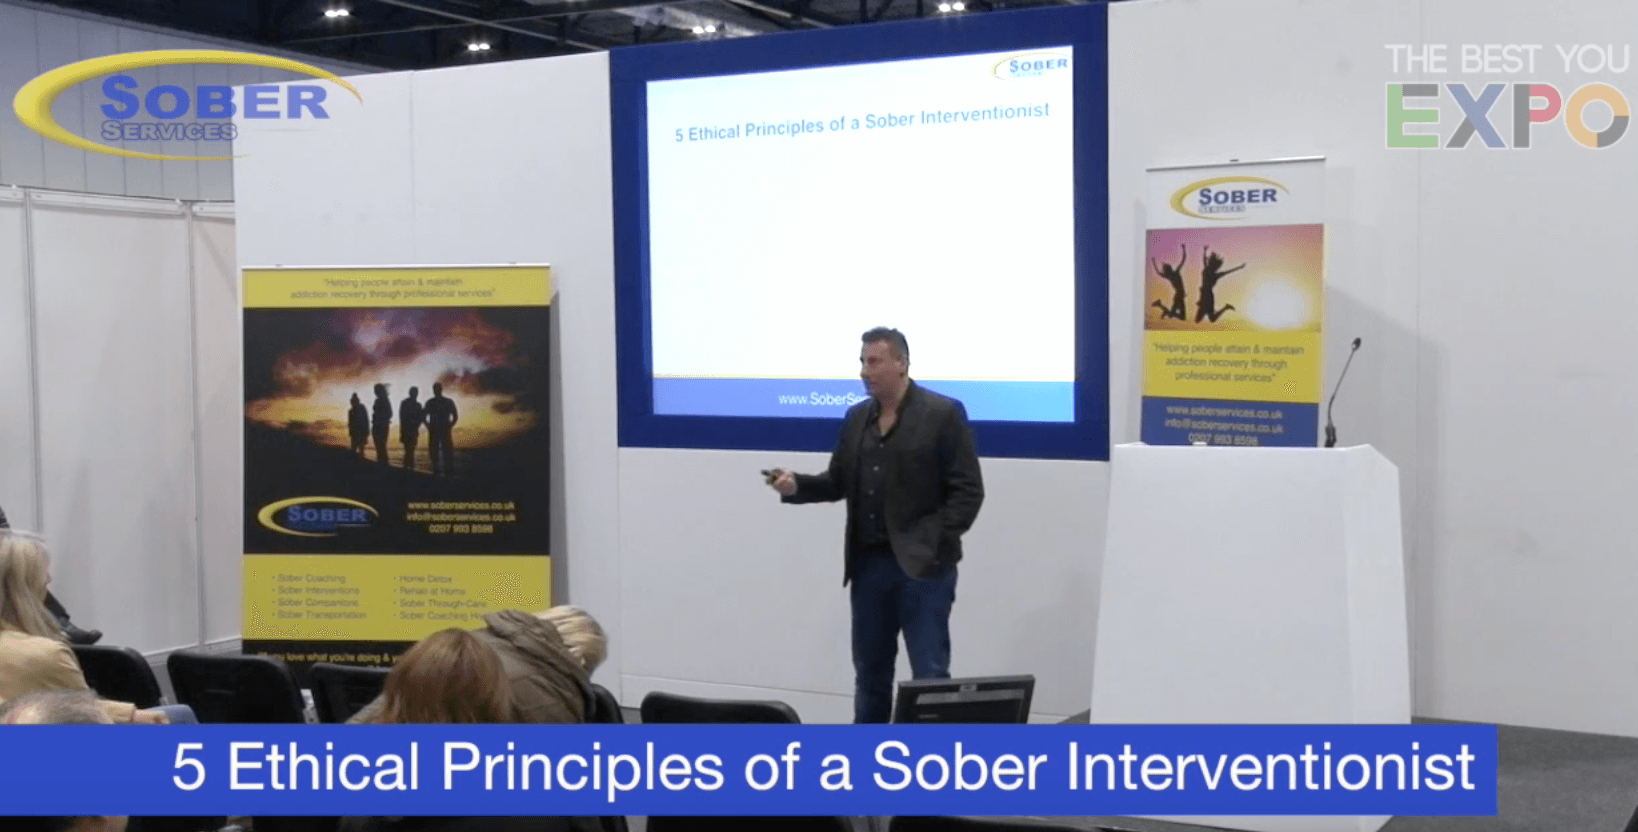 5 Ethical Principles of a Sober Interventionist